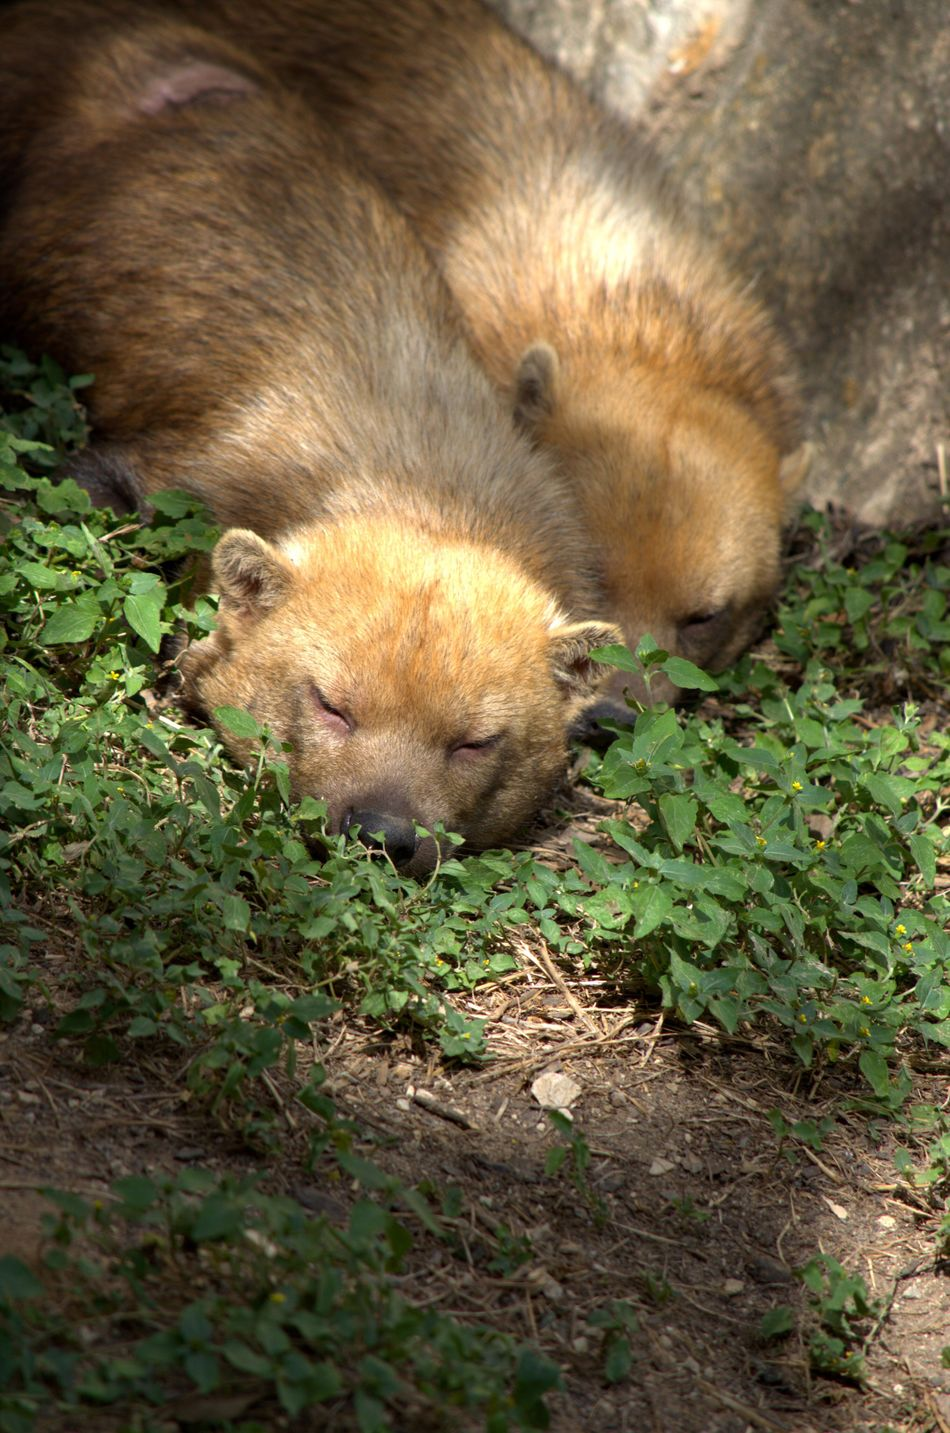 Bush Dog Outdoors Animal Wildlife San Antonio, Texas San Antonio Zoo Canine Sleeping Animal